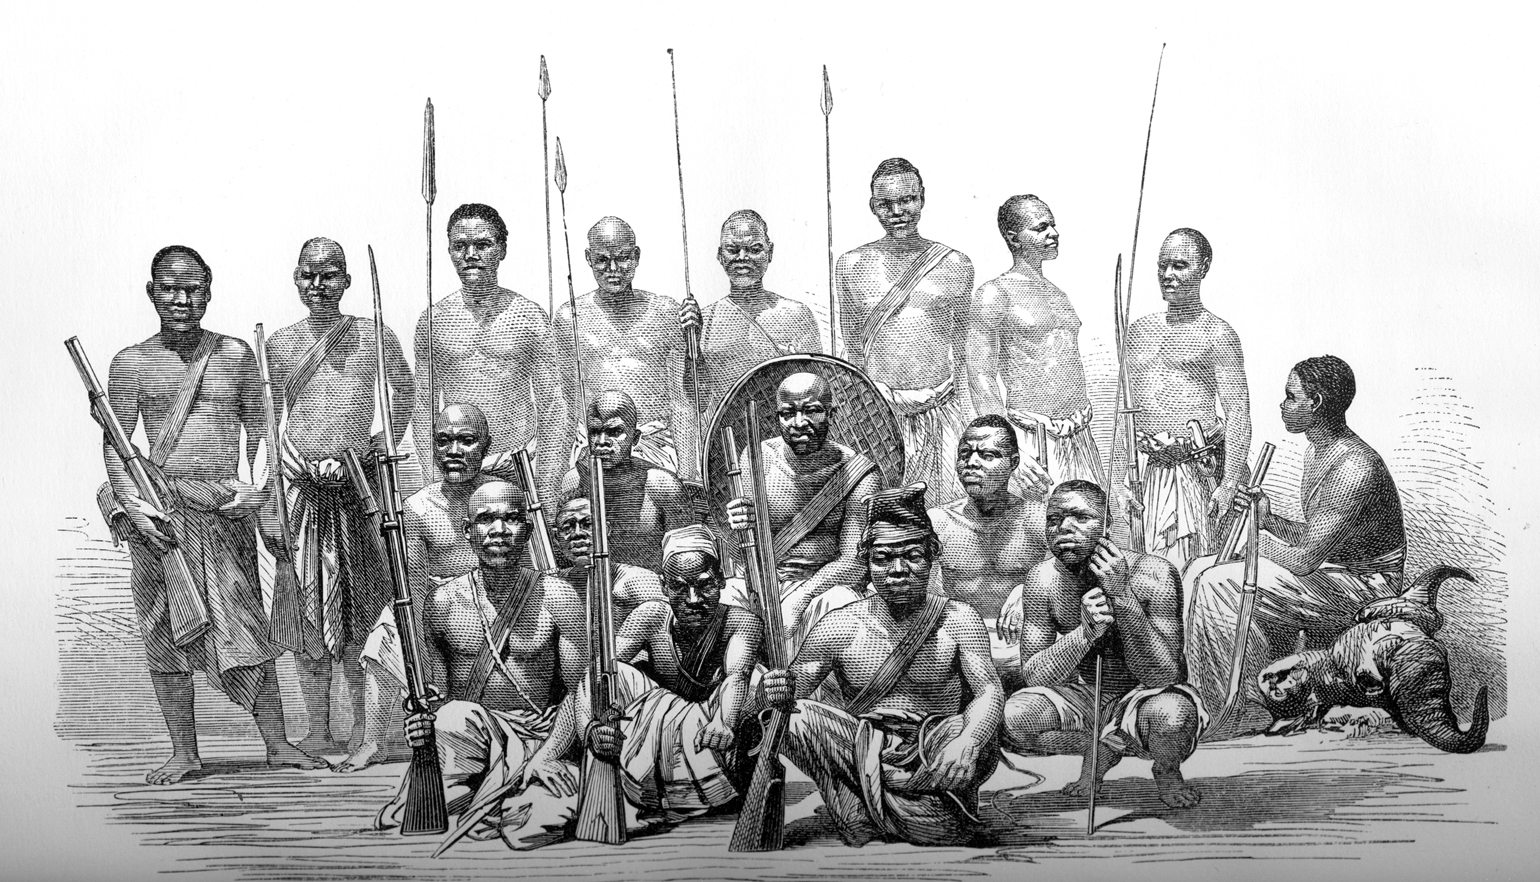 Some of the African porters who accompanied Burton and Speke on their historic expedition to find the source of the Nile